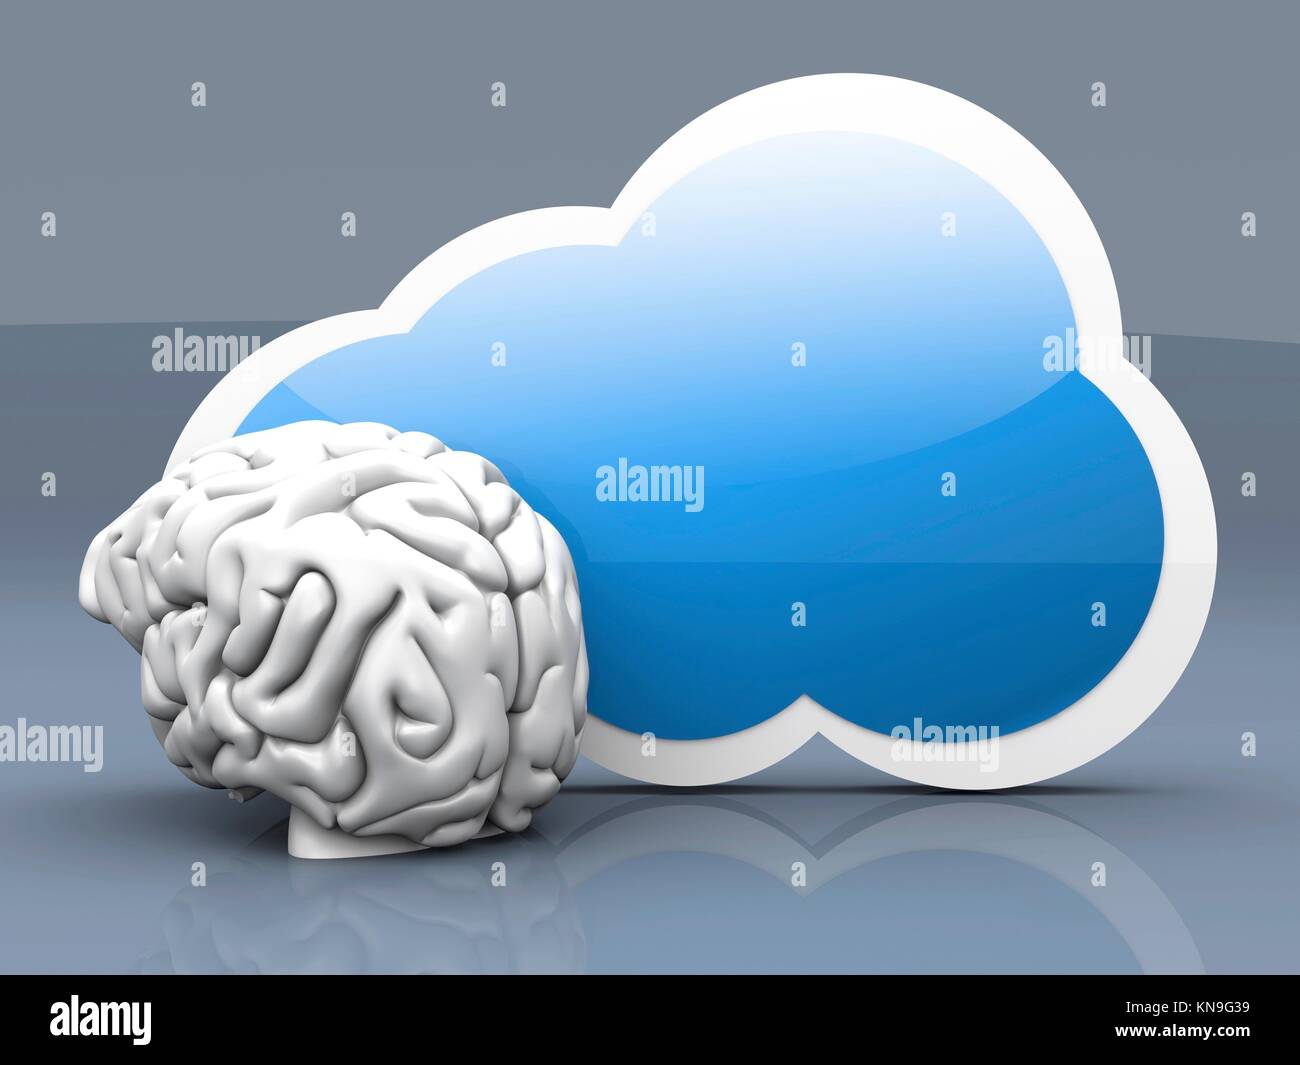 Intelligence of cloud computing. 3D rendered illustration. - Stock Image